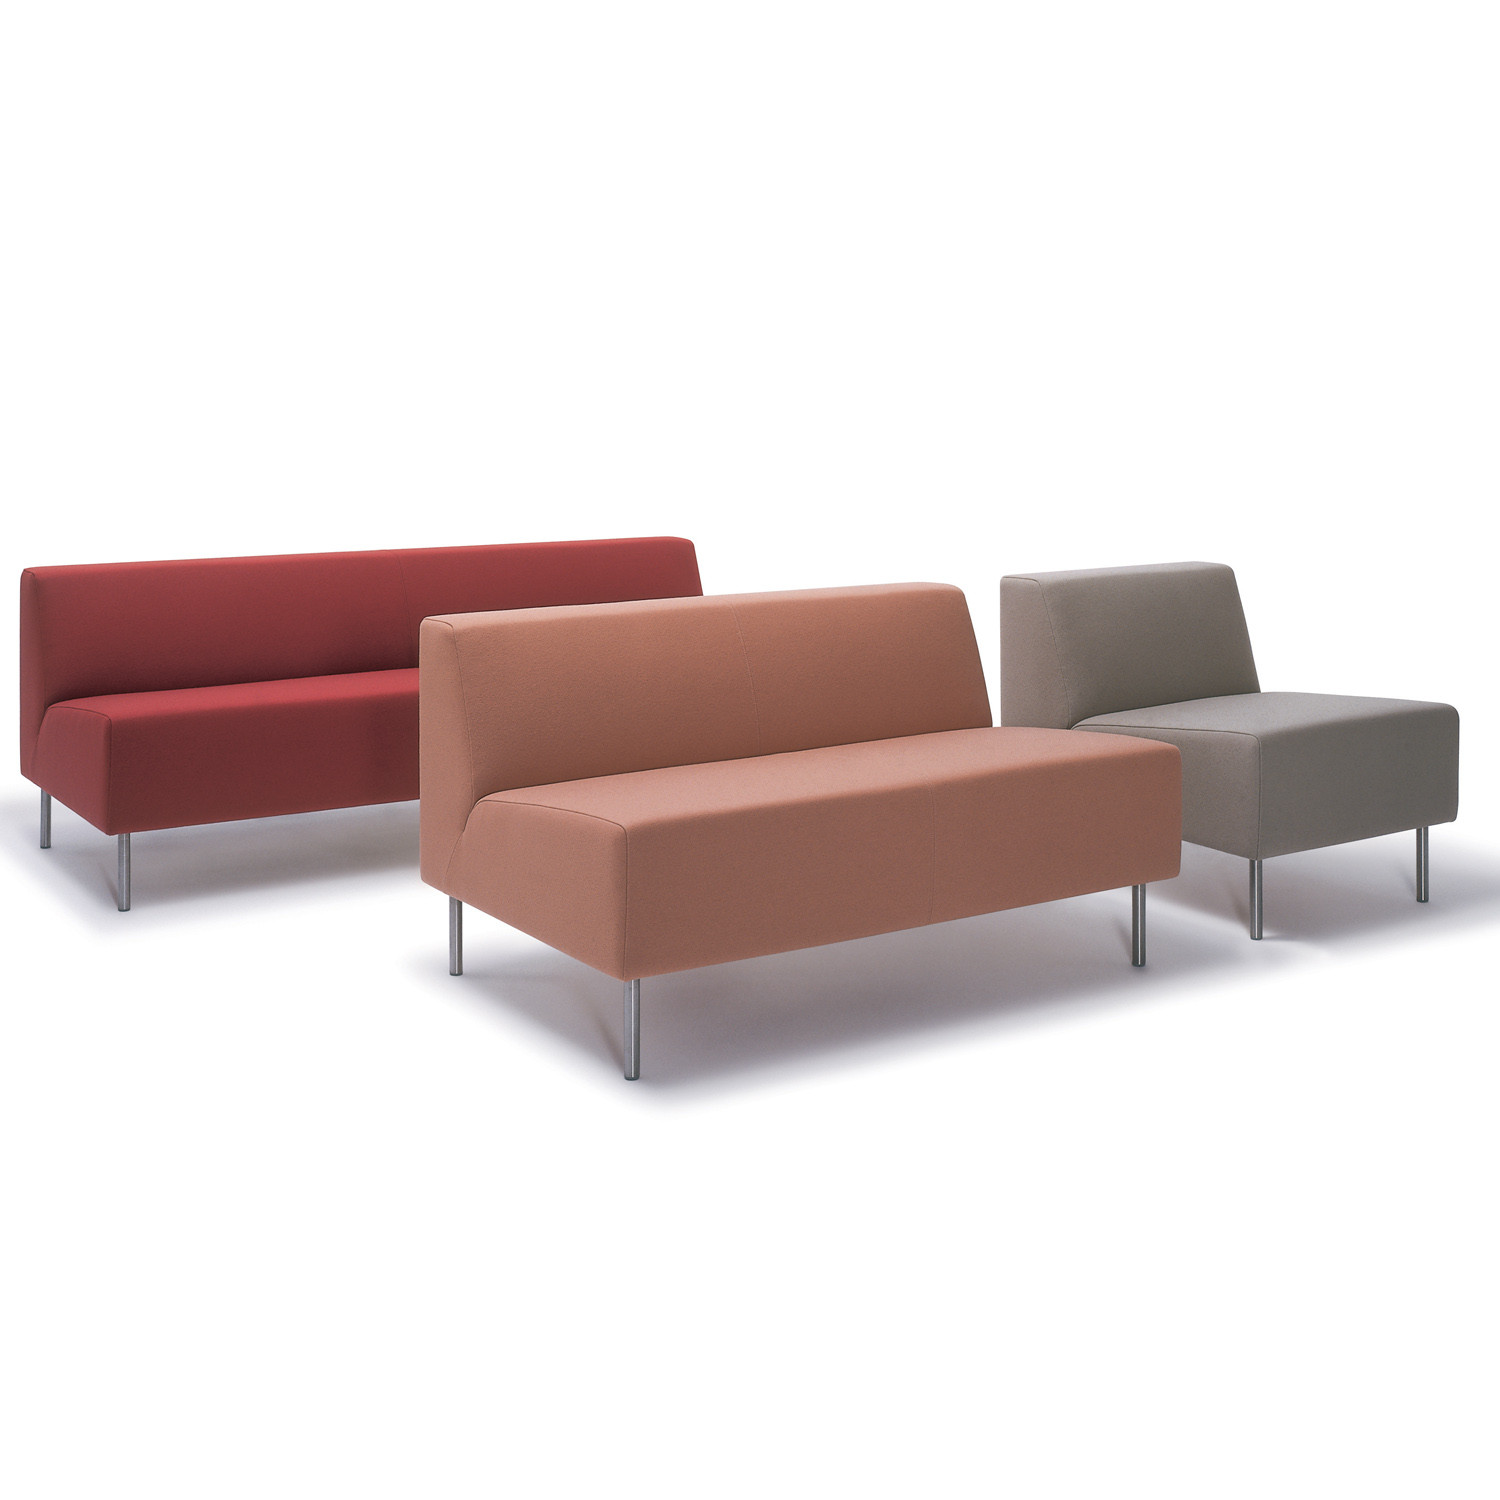 HM18 Soft Seating Range without armrests